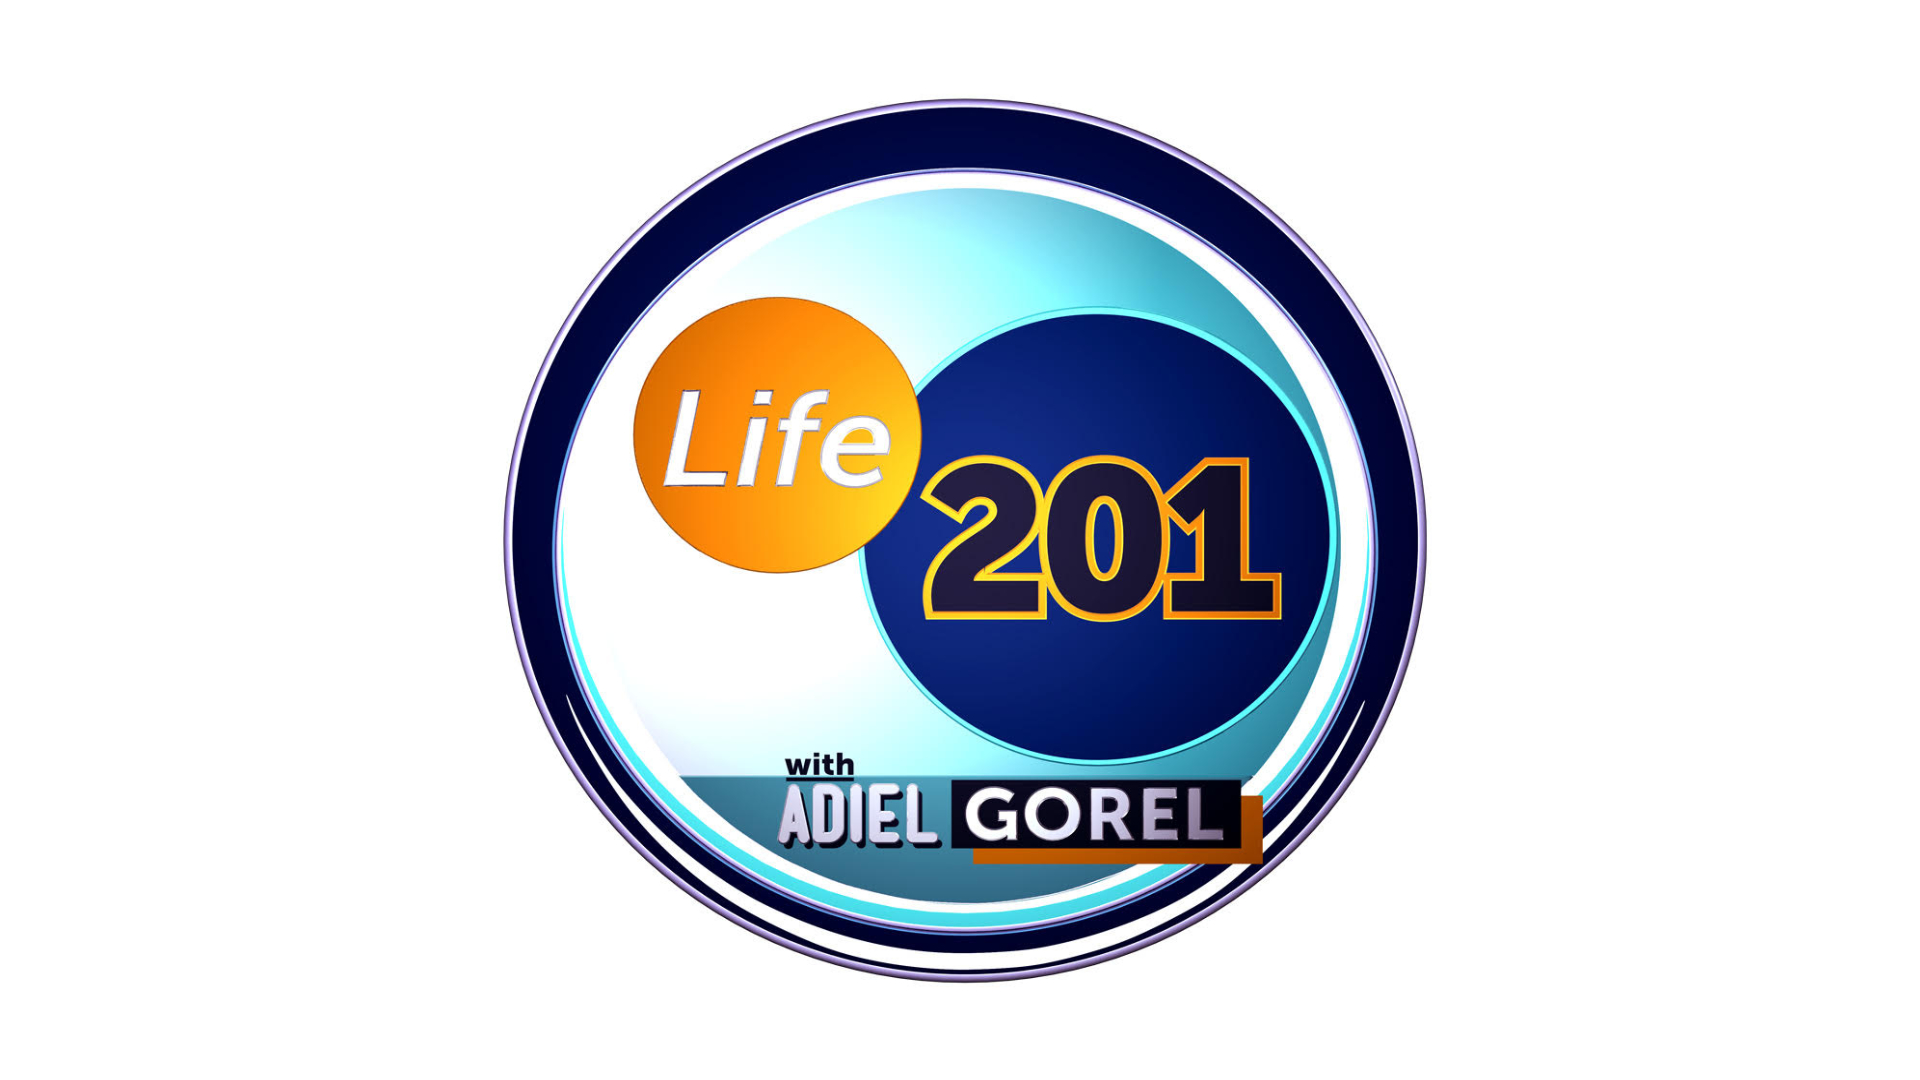 Life 201 with Adiel Gorel